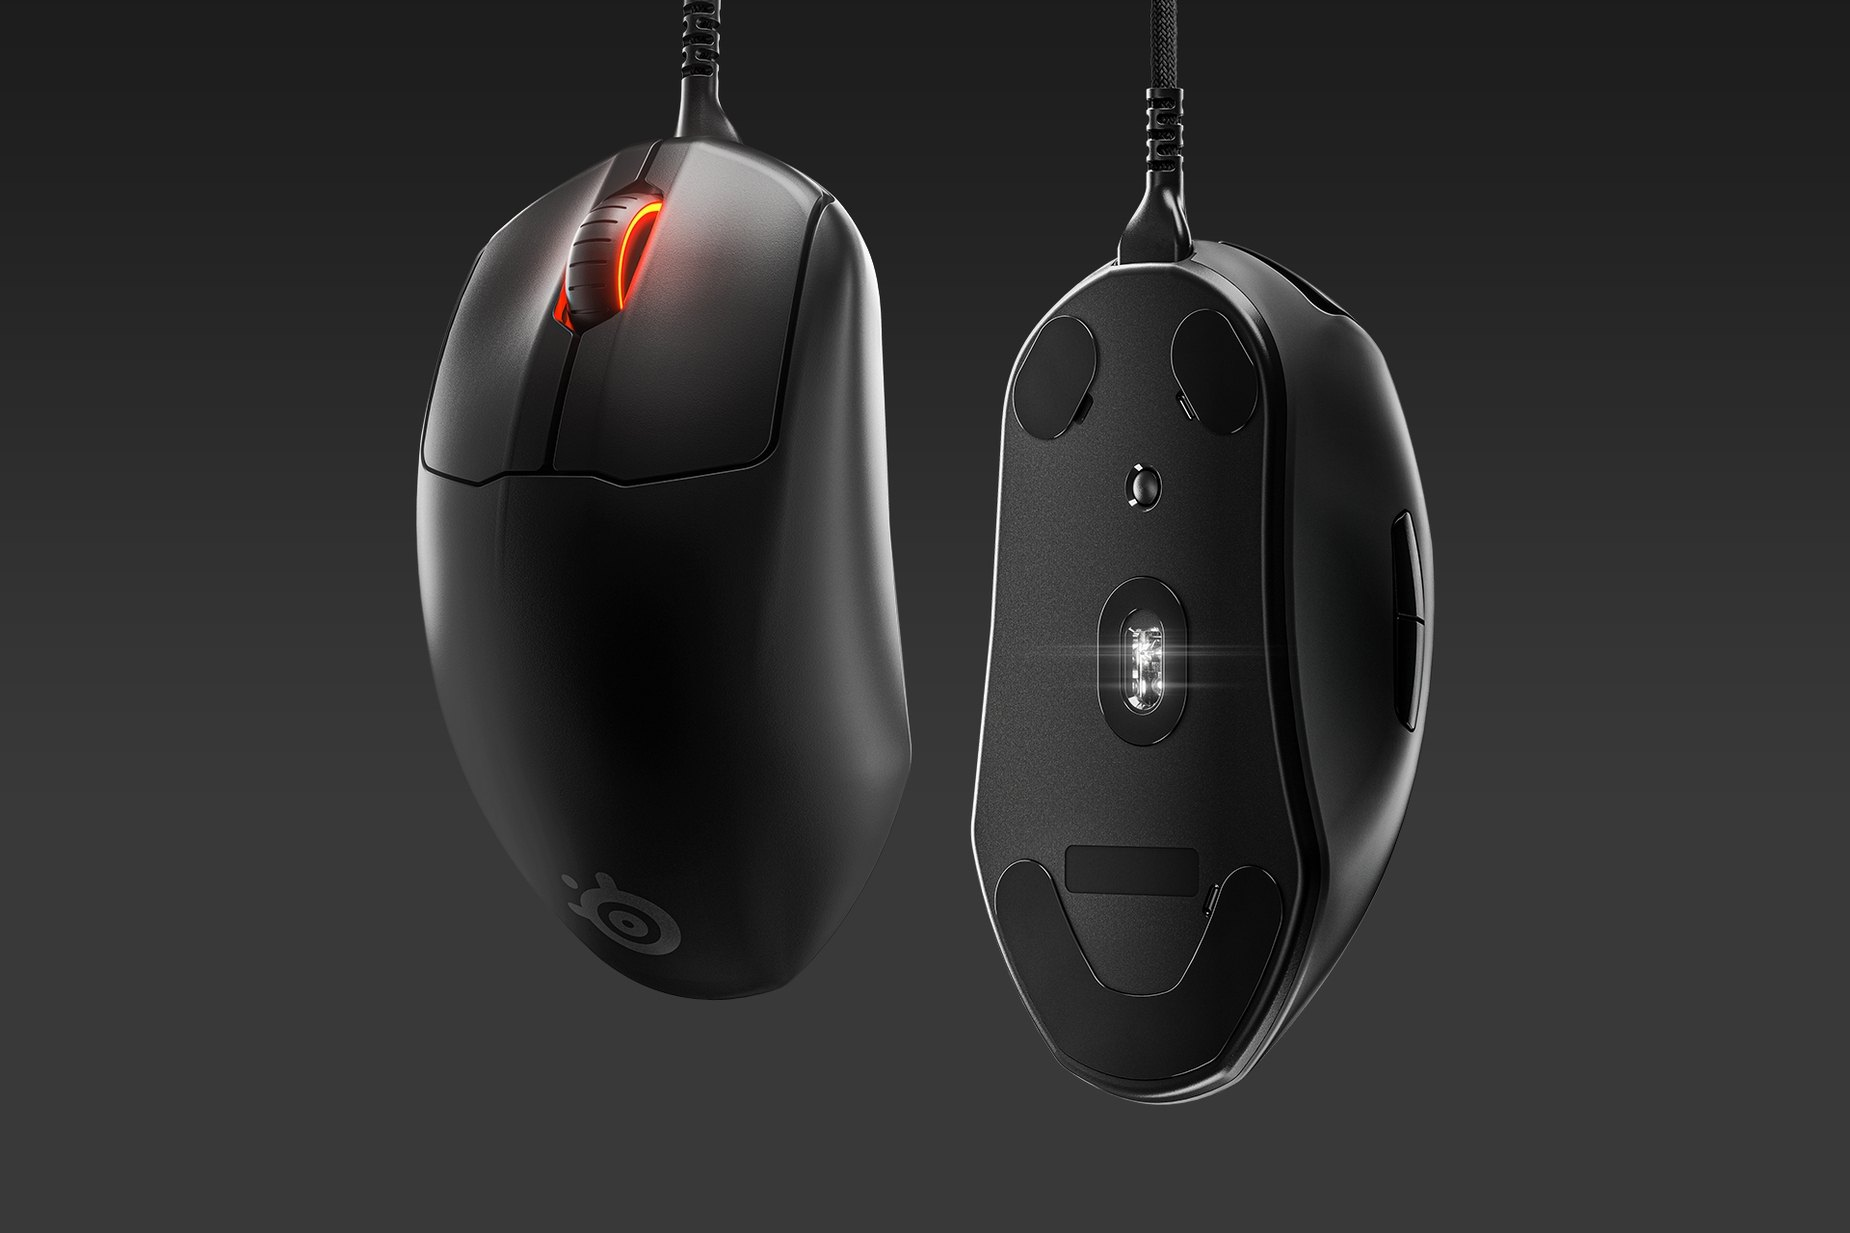 SteelSeries Prime Pro Series Gaming Mouse Review